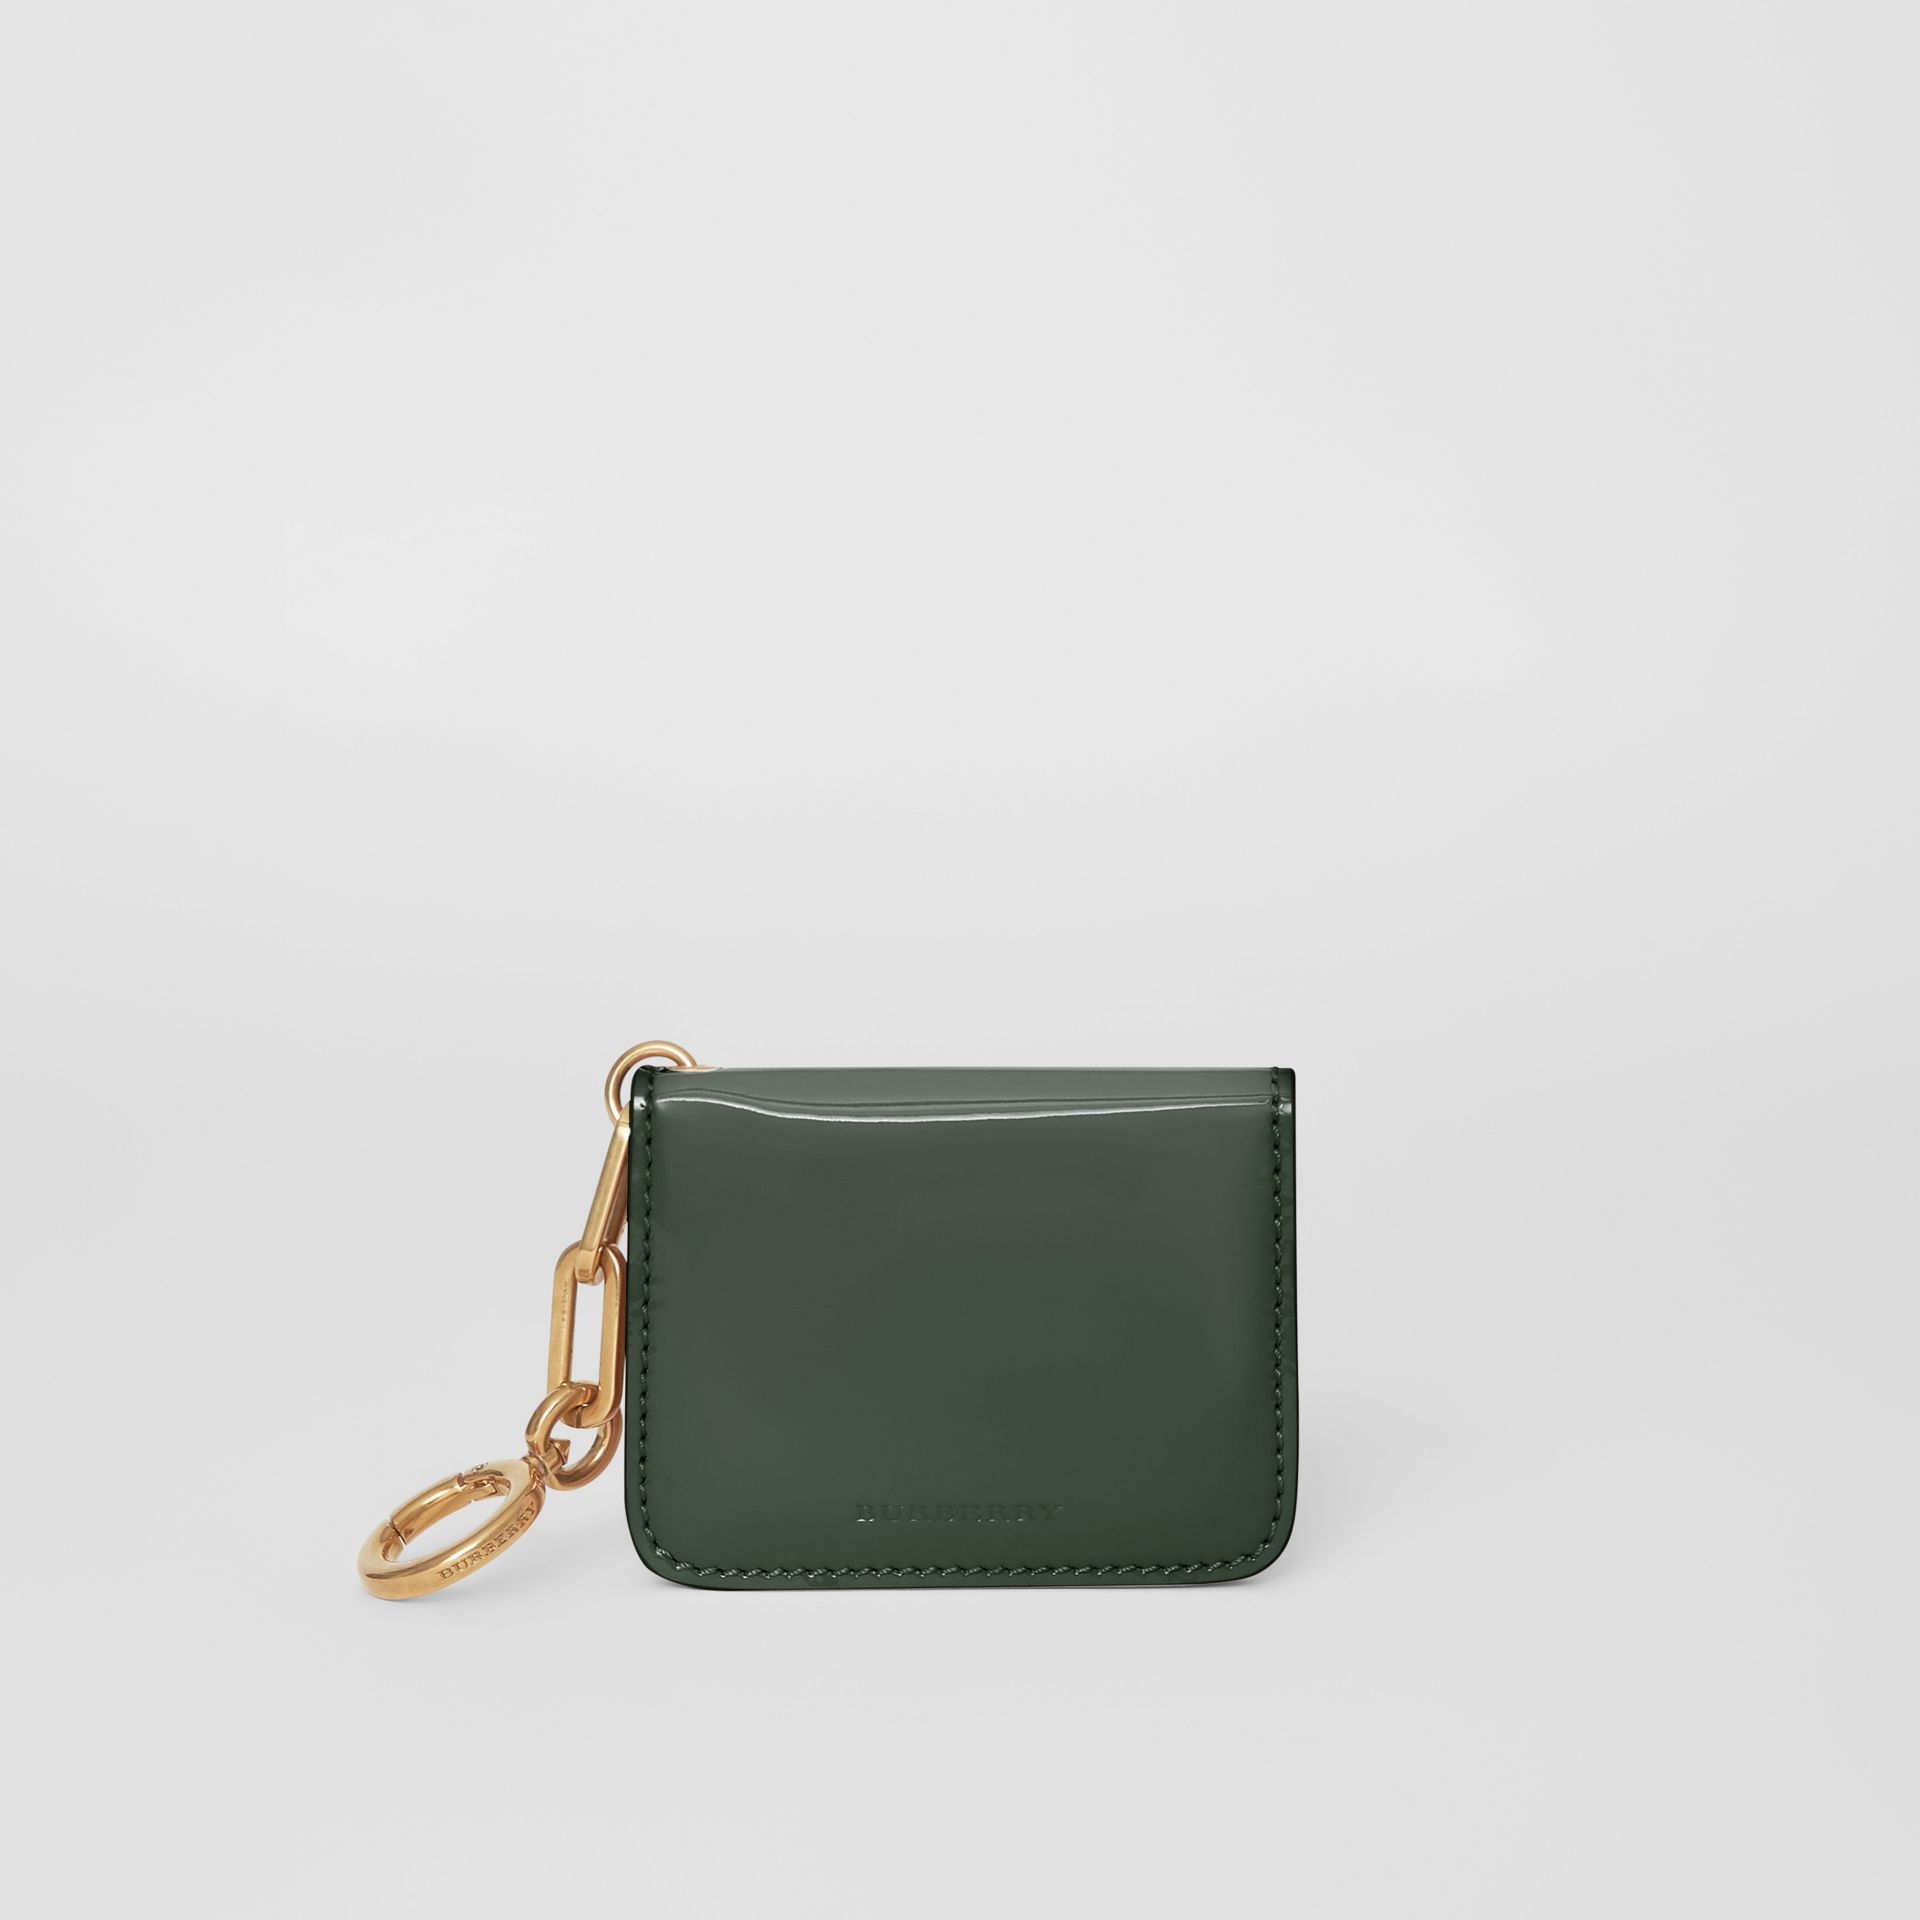 Link Detail Patent Leather ID Card Case Charm in Dark Forest Green - Women | Burberry United States - gallery image 5